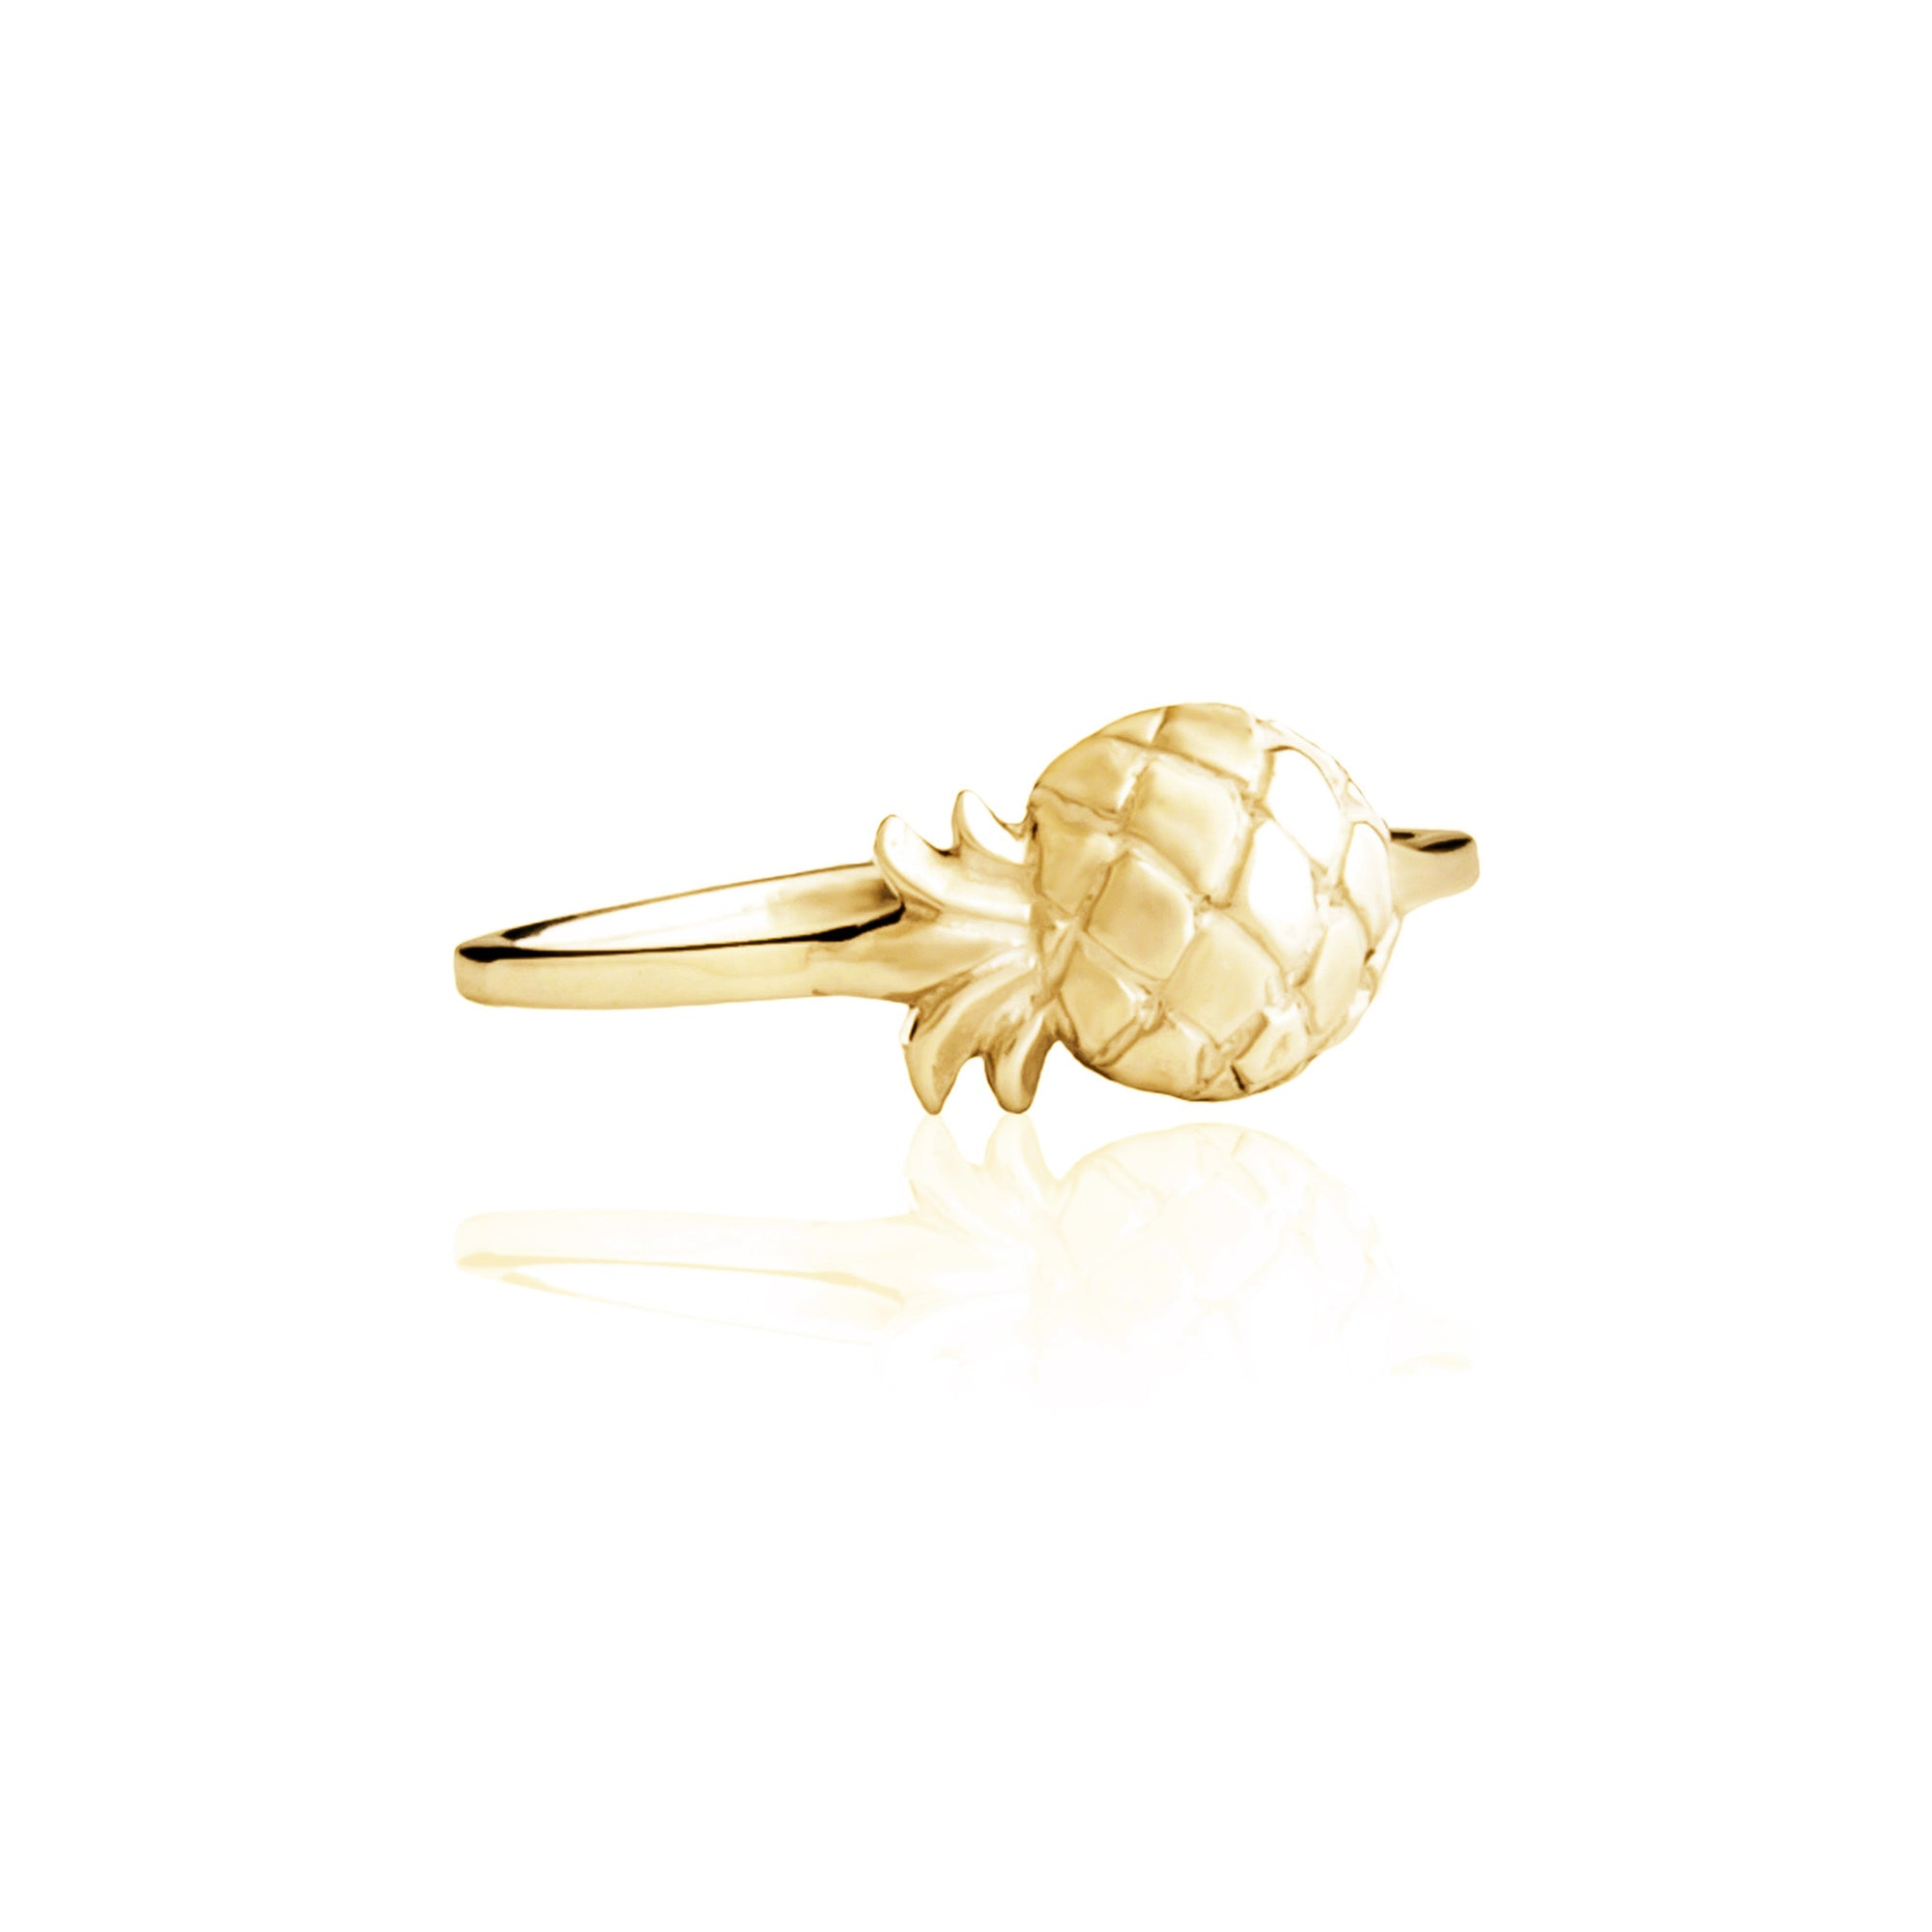 La Luna Rose Jewellery - Pineapple Ring Gold